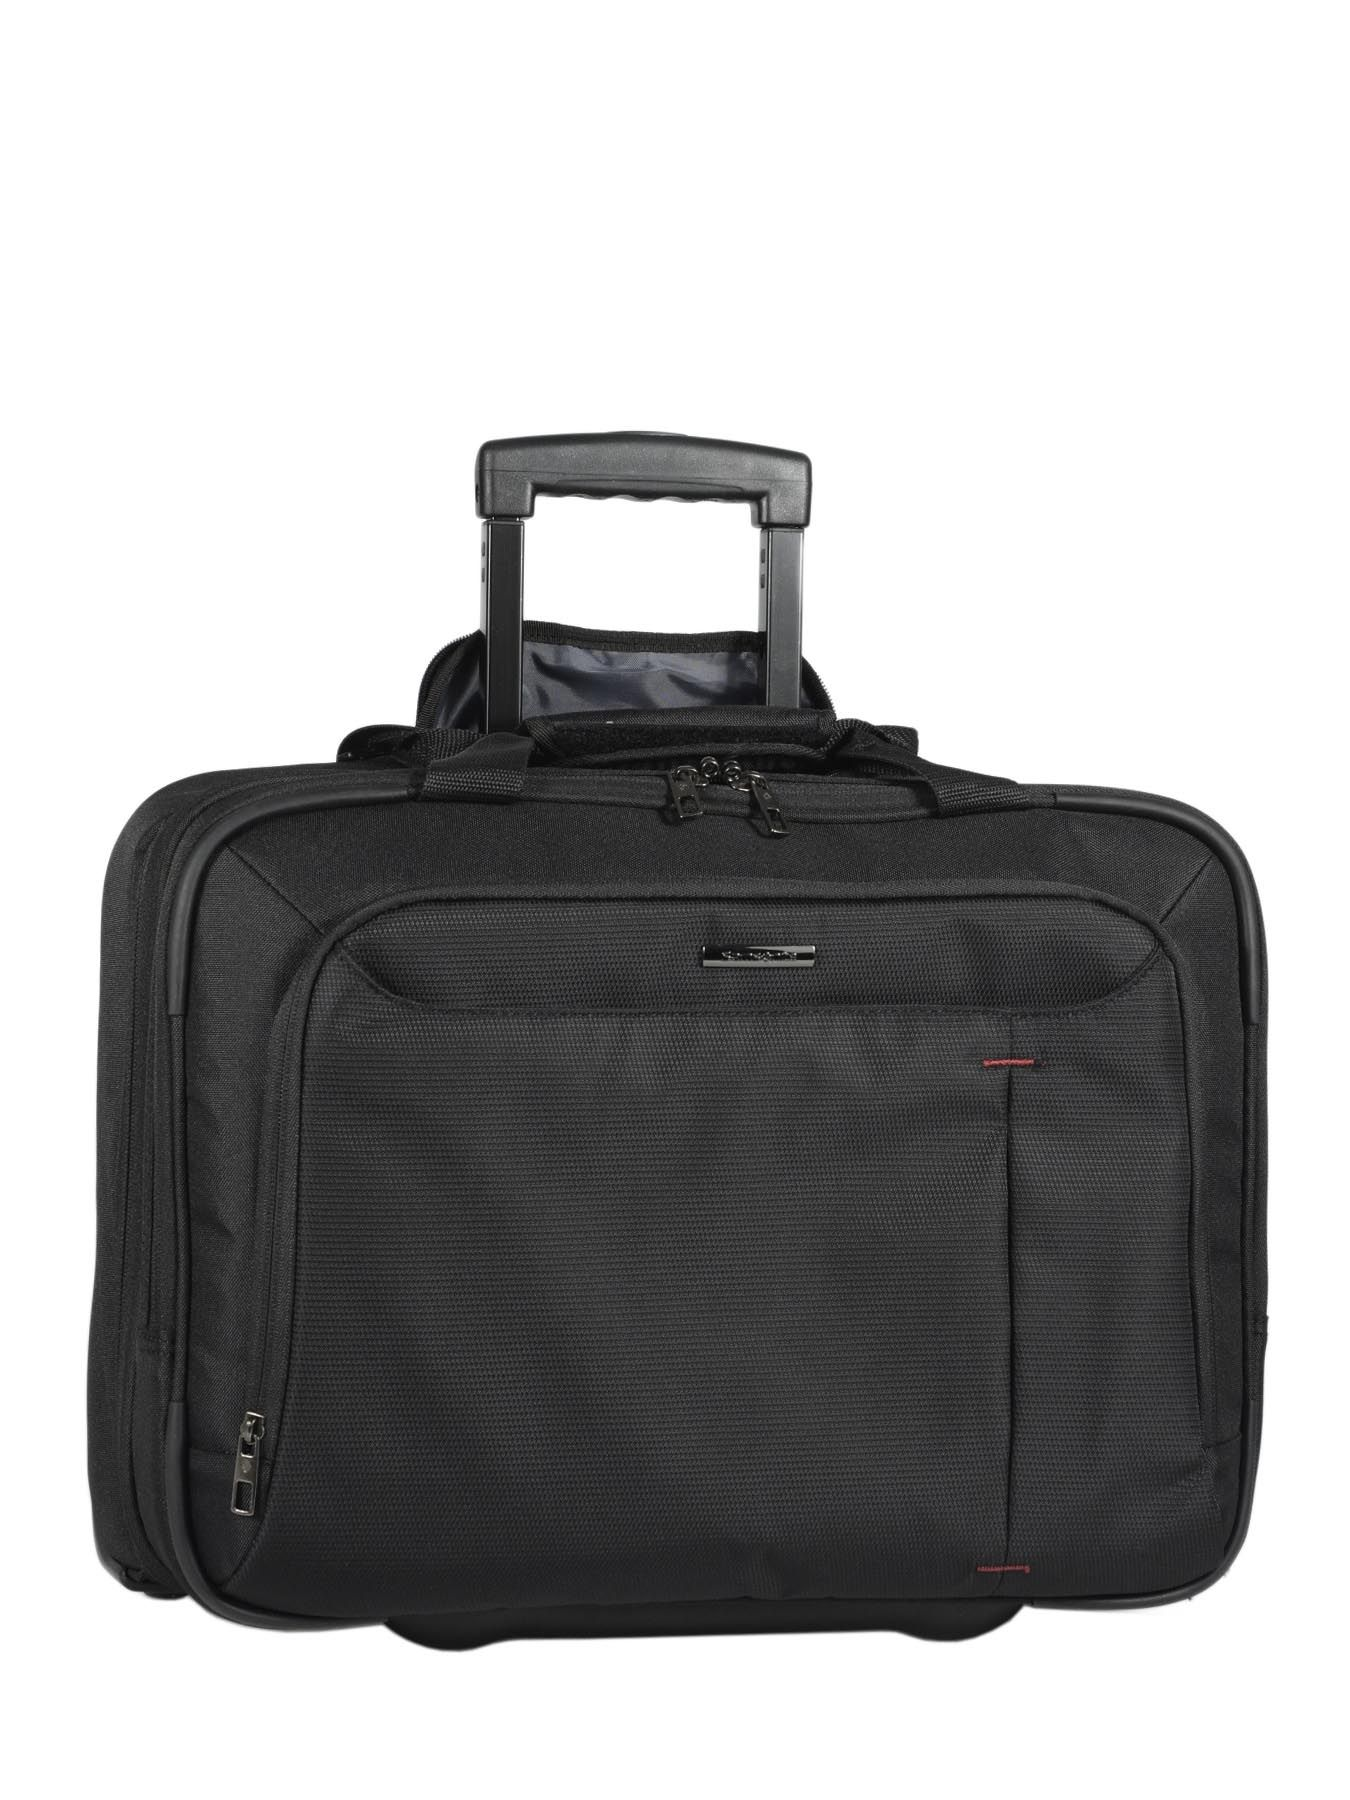 pilot case roulettes samsonite guardit black en vente au meilleur prix. Black Bedroom Furniture Sets. Home Design Ideas